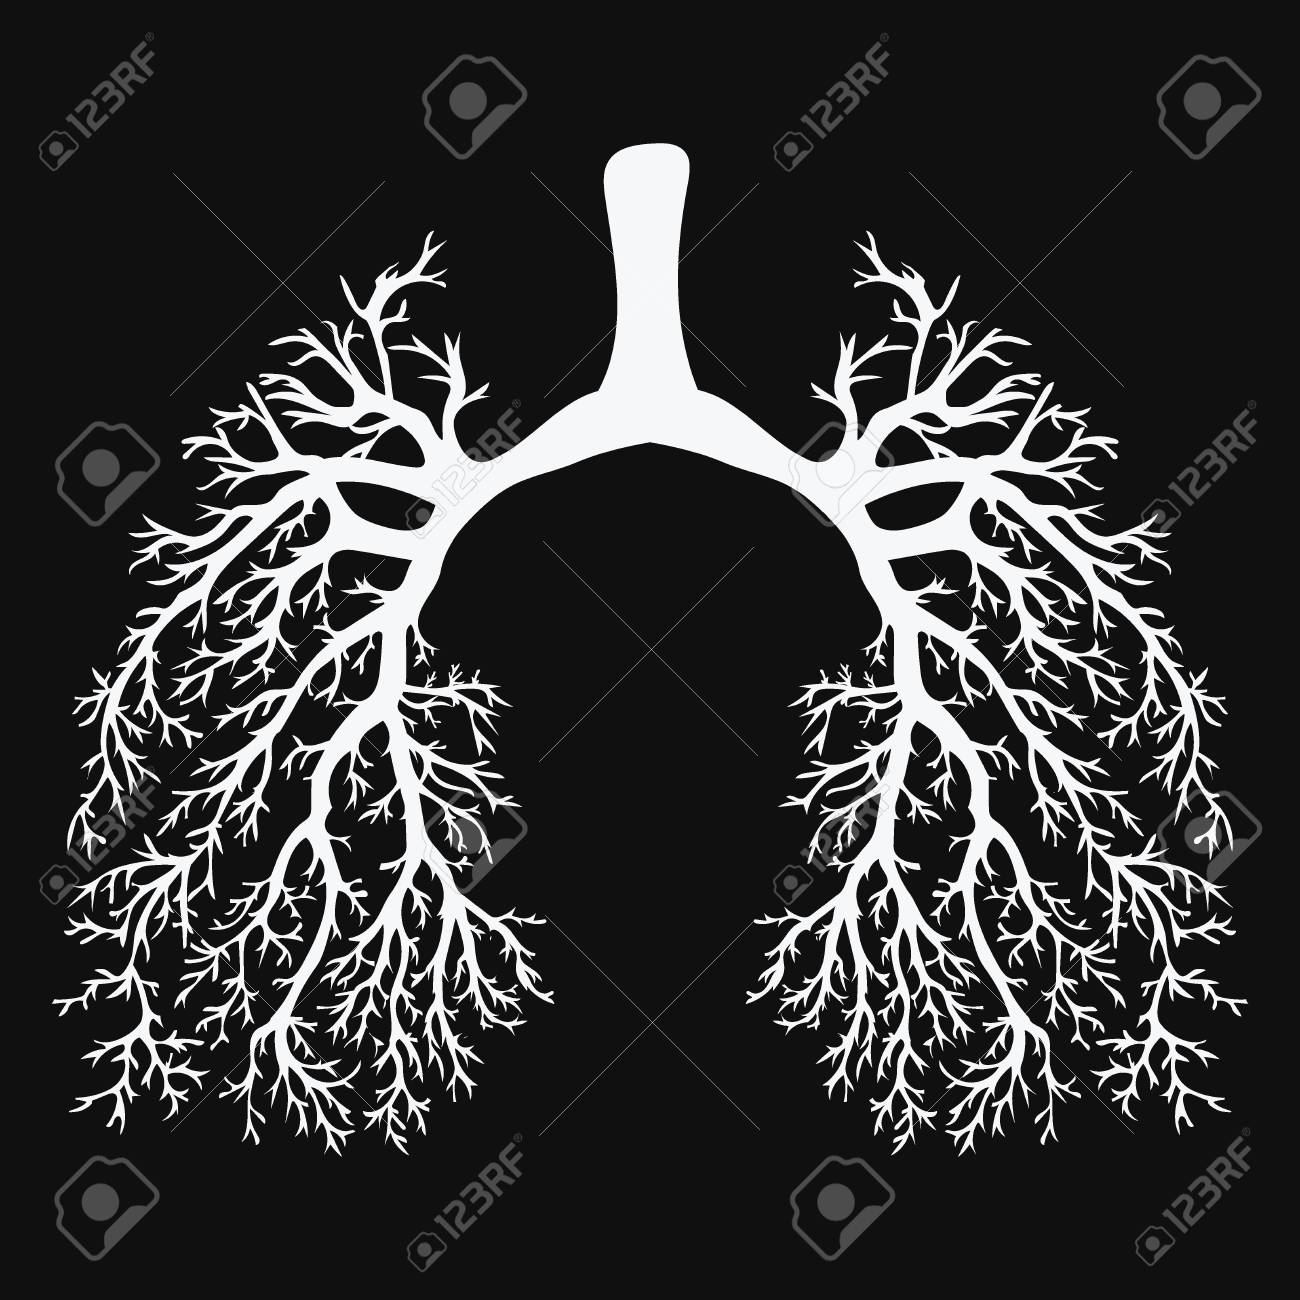 Human lungs. Respiratory system. Healthy lungs. Light in the form of a tree. Black and white drawing on a chalkboard. Medicine. - 90812733